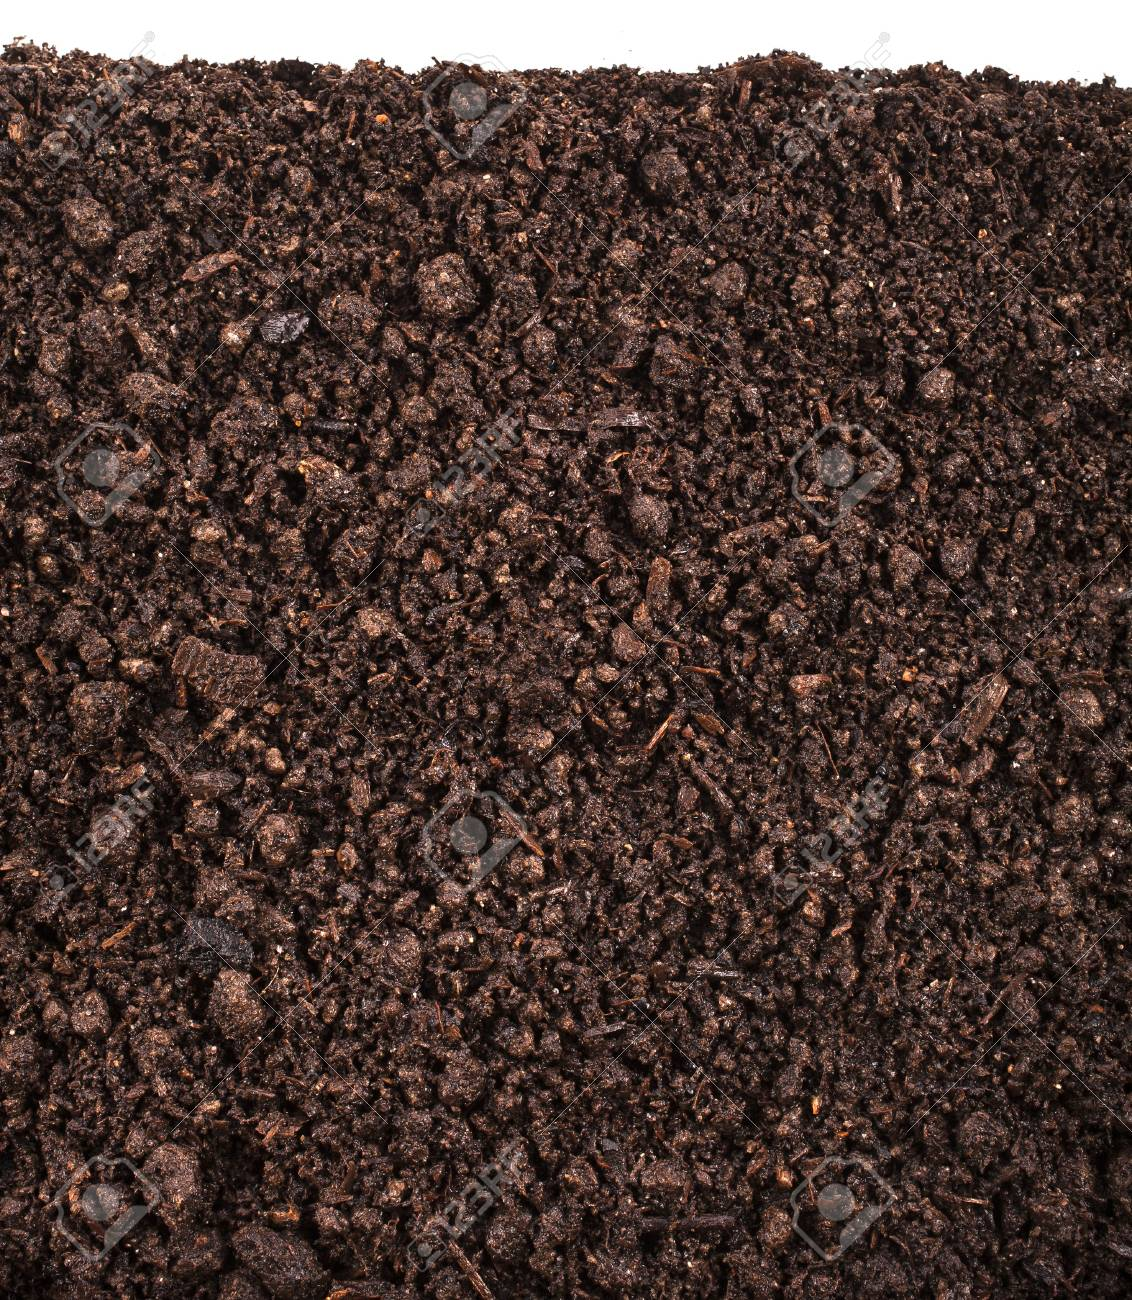 Close up of organic soil isolated on white background Stock Photo - 20509404